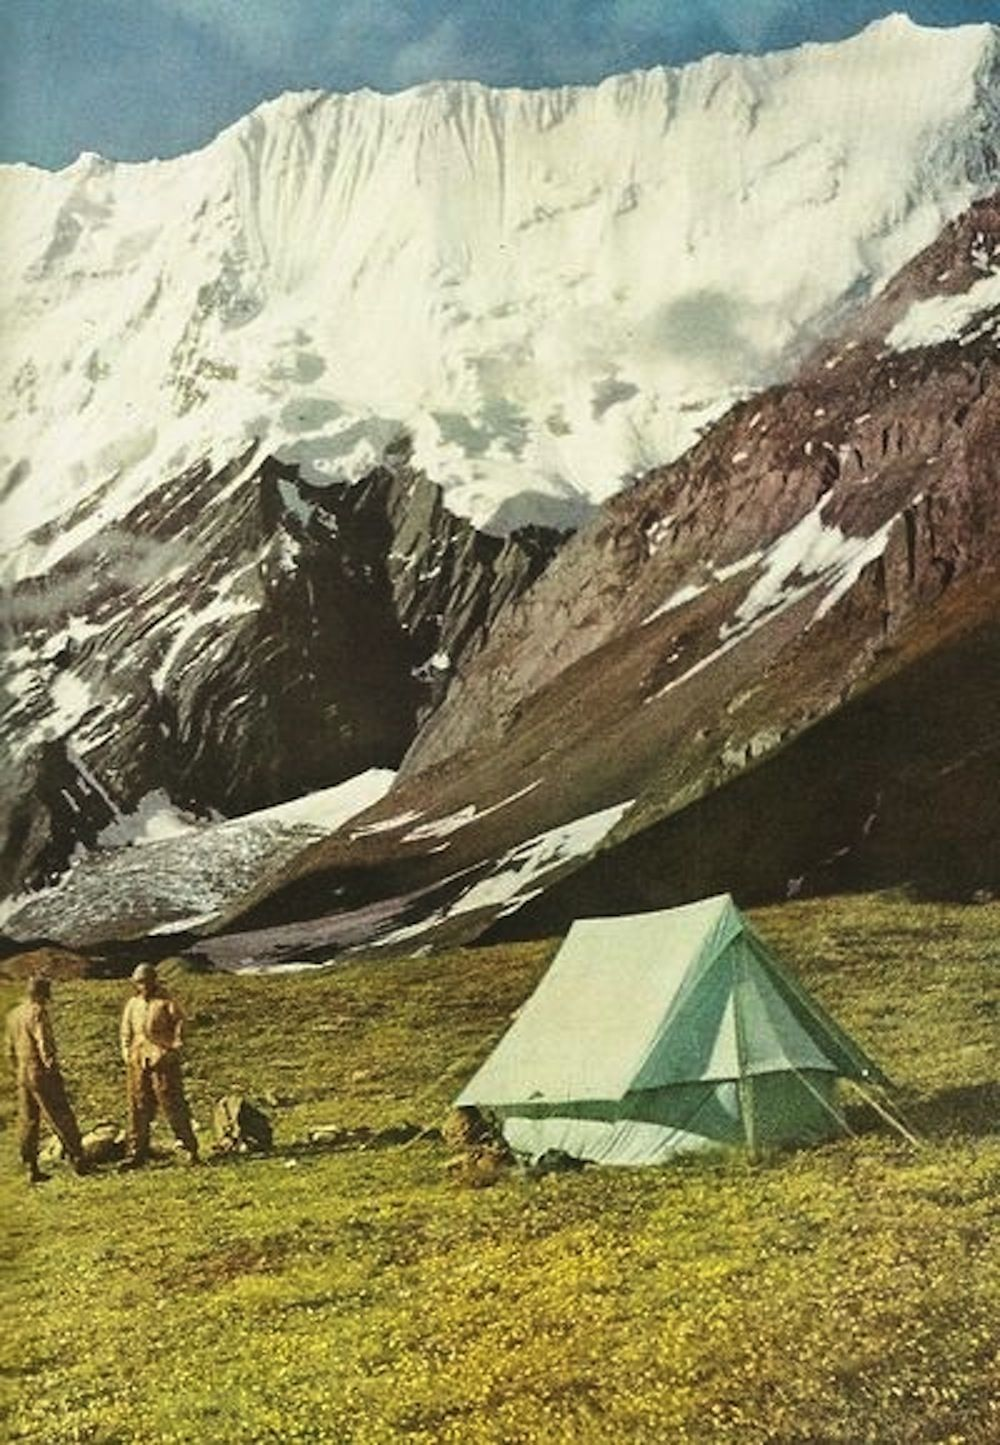 Retro Outdoors National geographic, Outdoor adventure, Trip